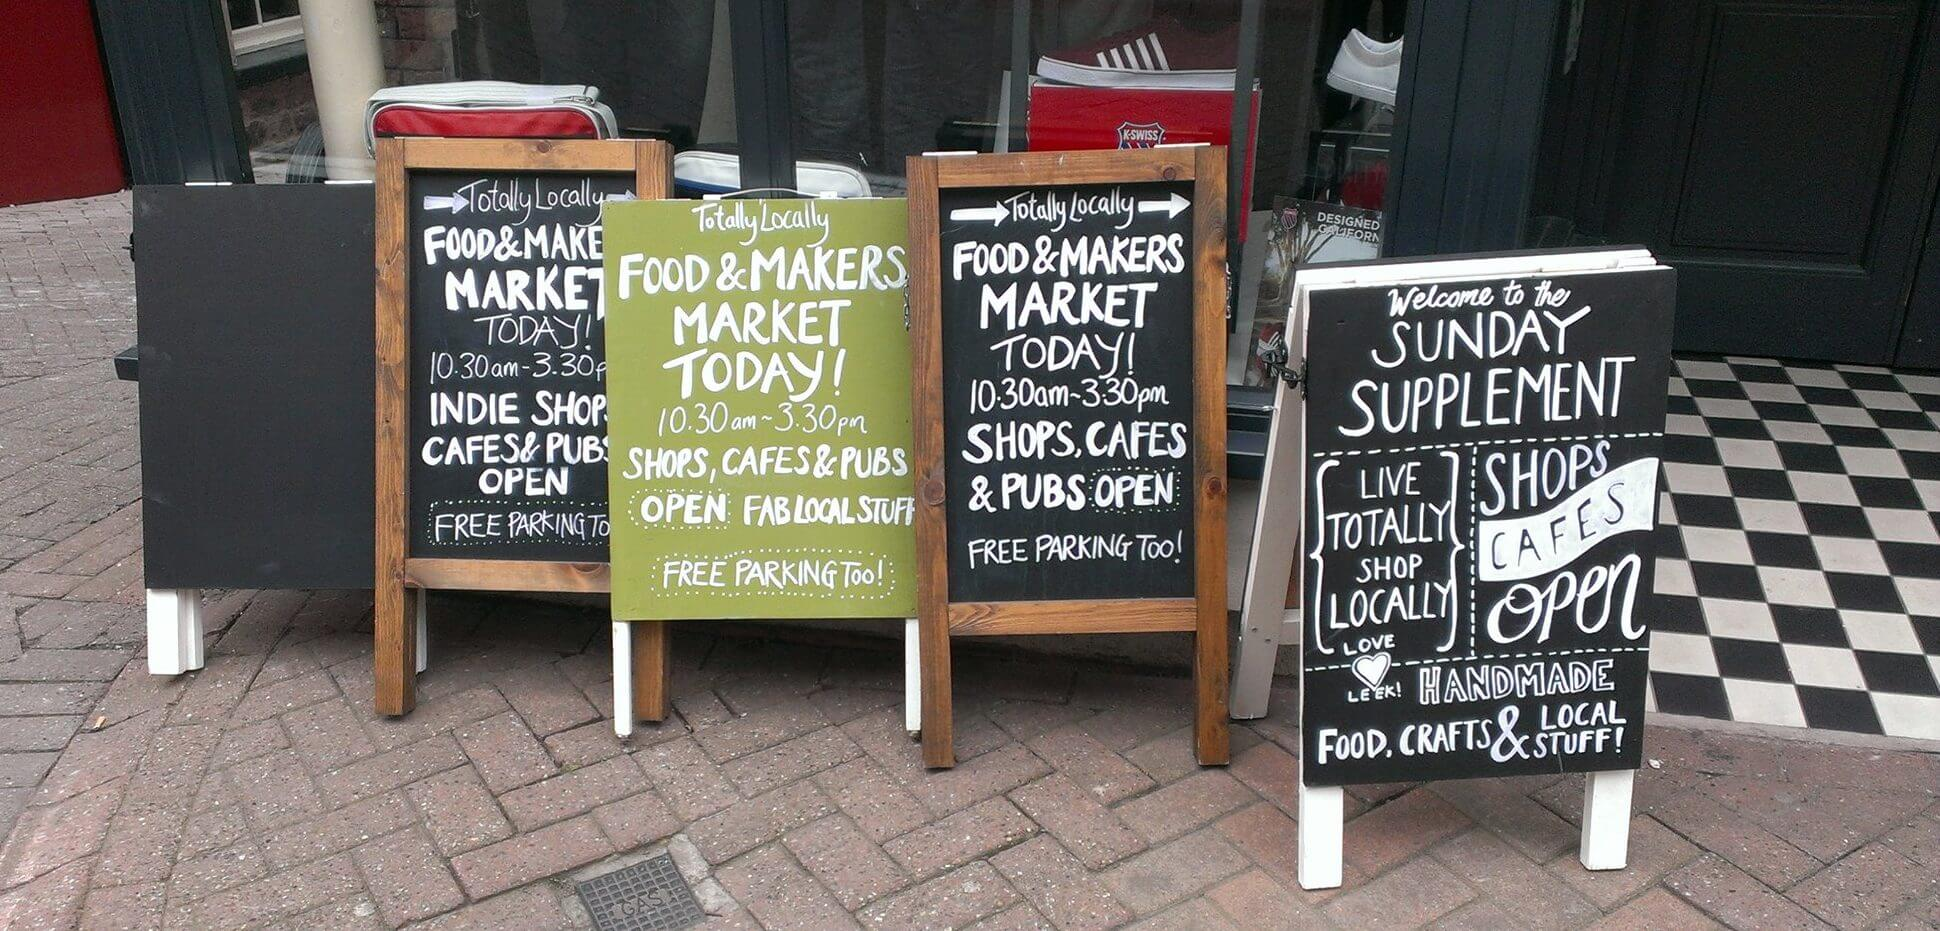 leek market sunday sunday supplement art craft food